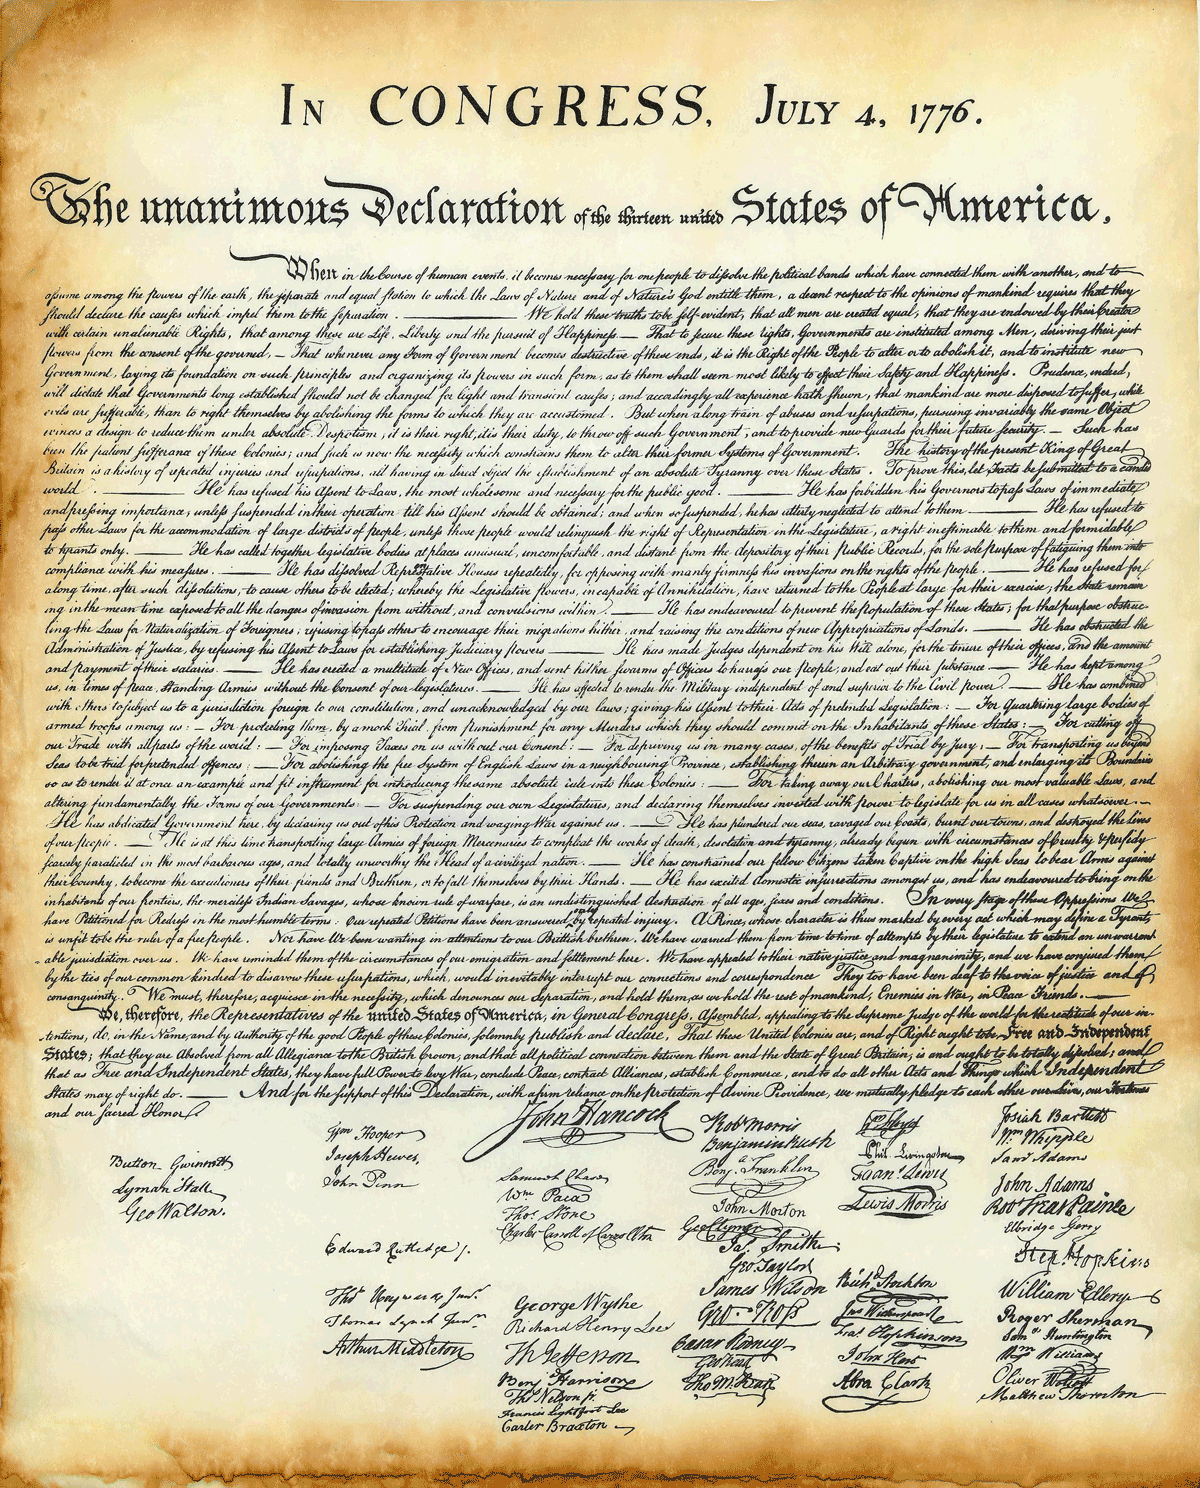 Is It Real? - Free Printable Copy Of The Declaration Of Independence